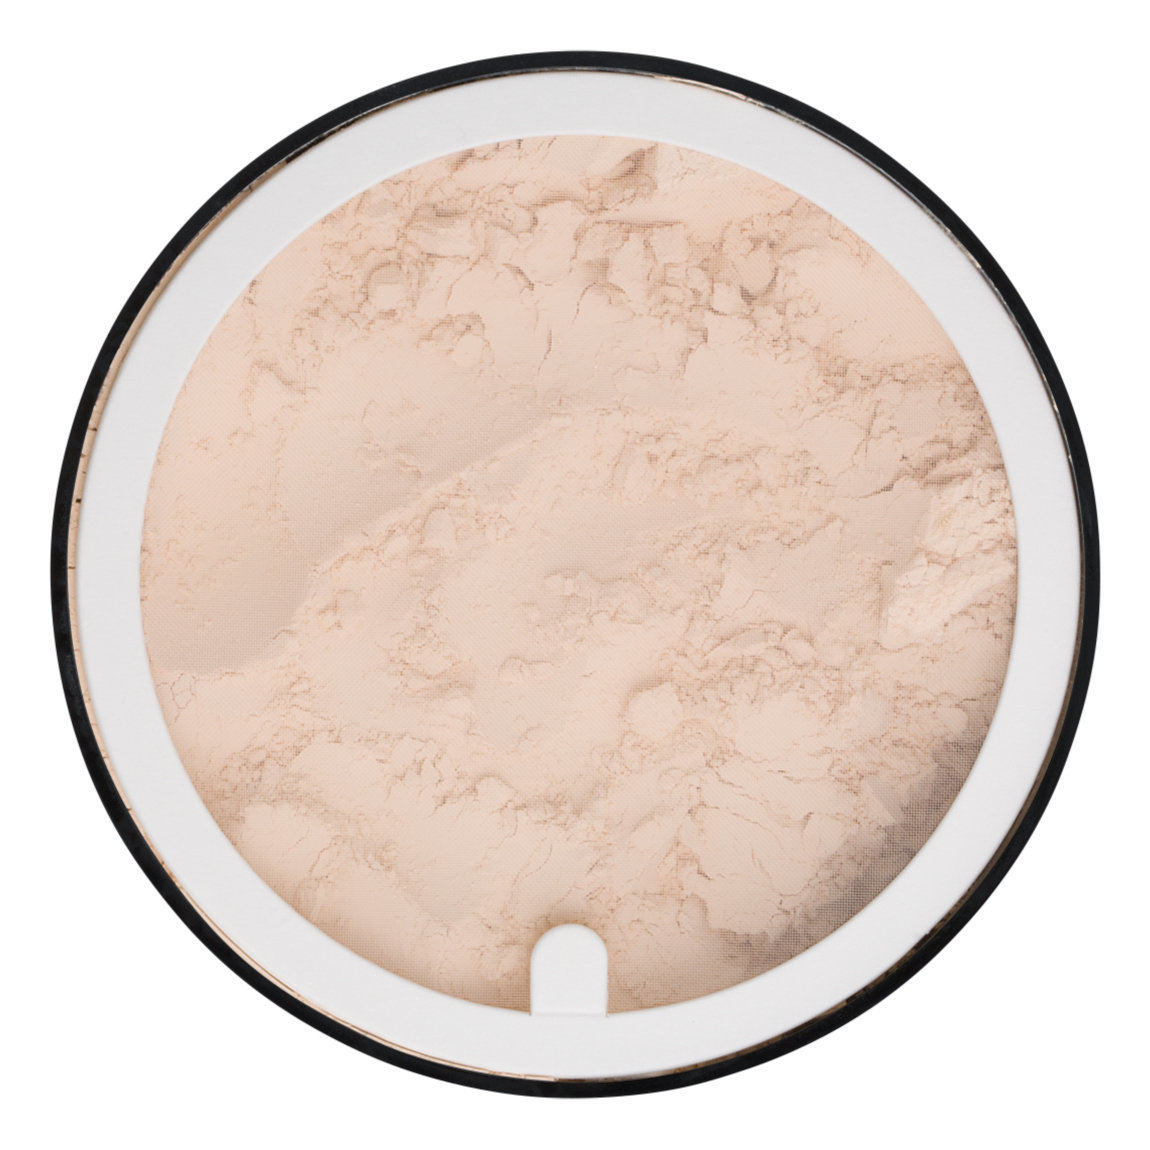 Anna Sui Loose Powder Refill M700 product smear.